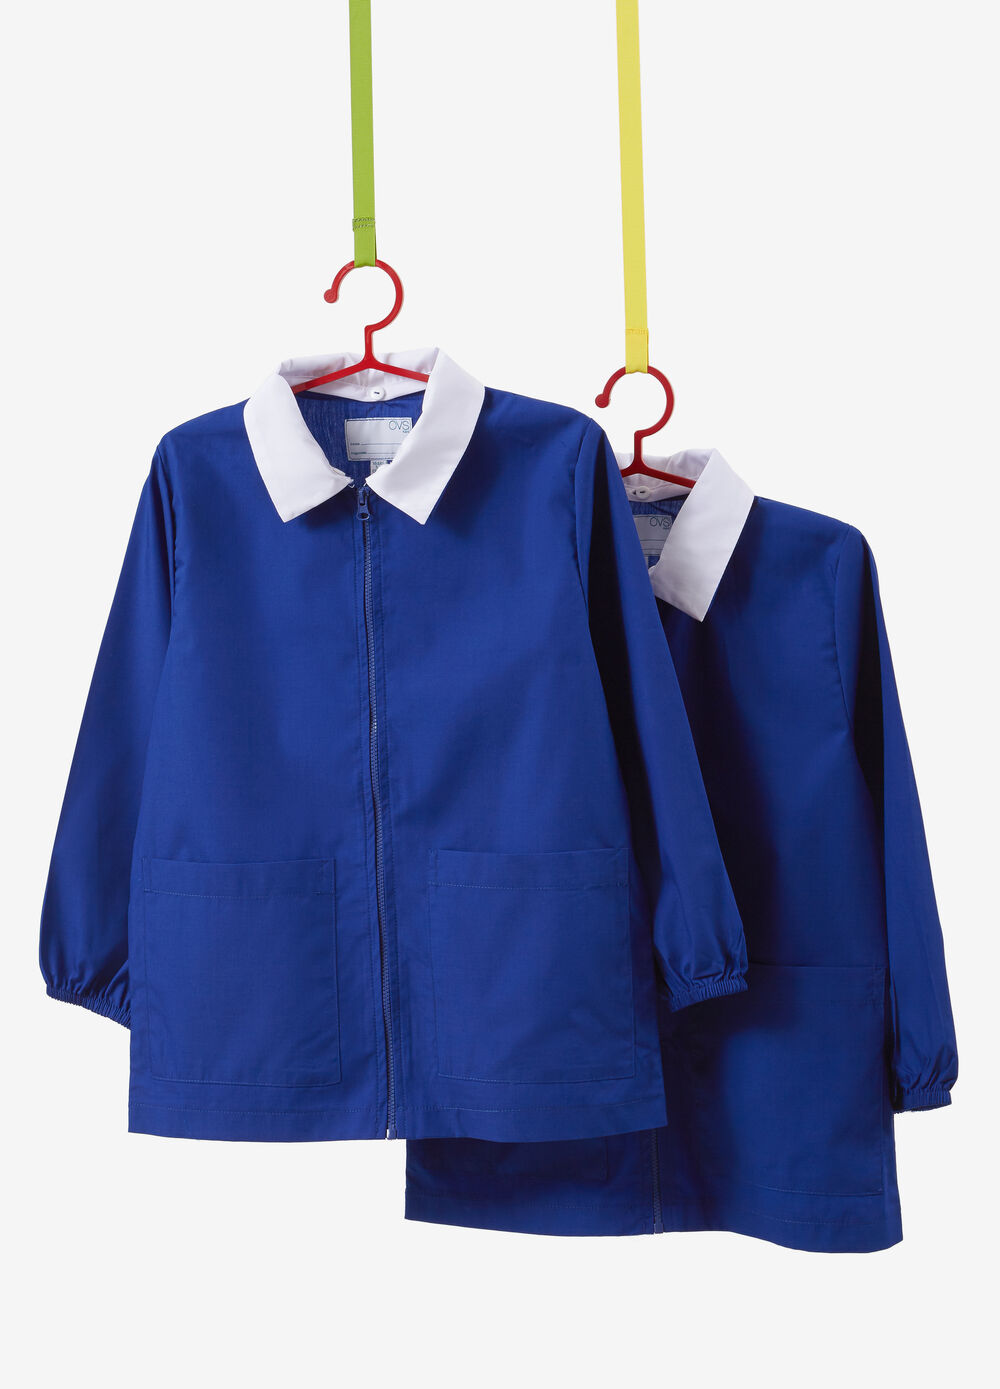 Set of two cotton blend smocks with zip